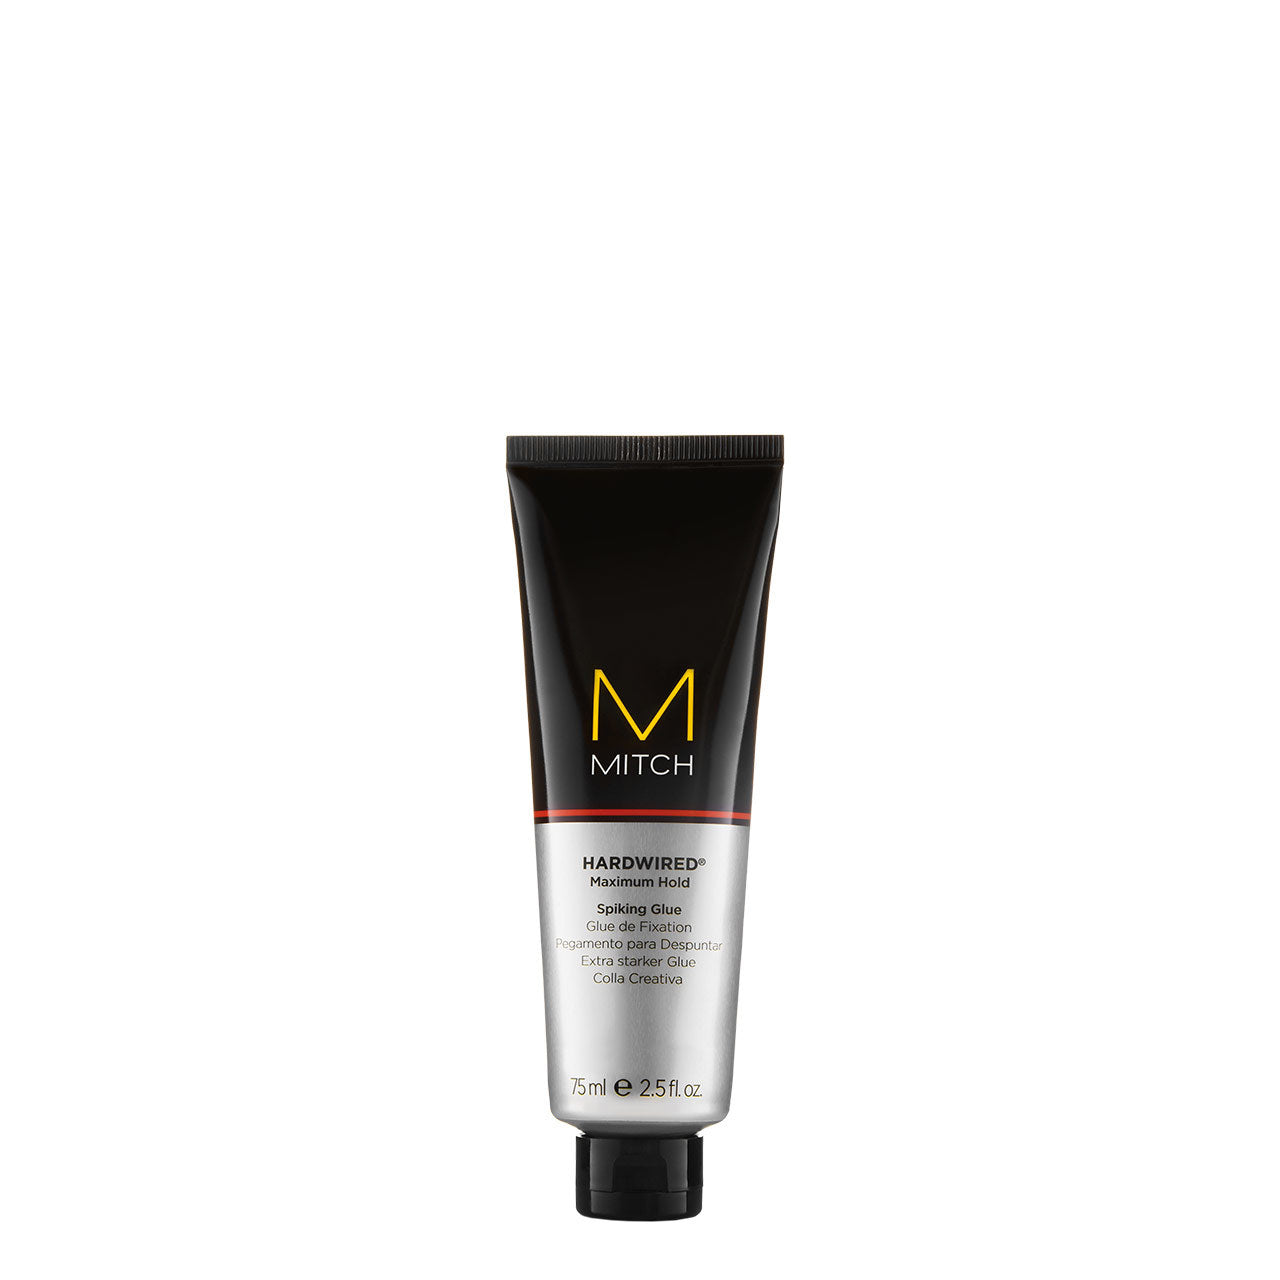 Paul Mitchell Mitch Hardwired 75ml